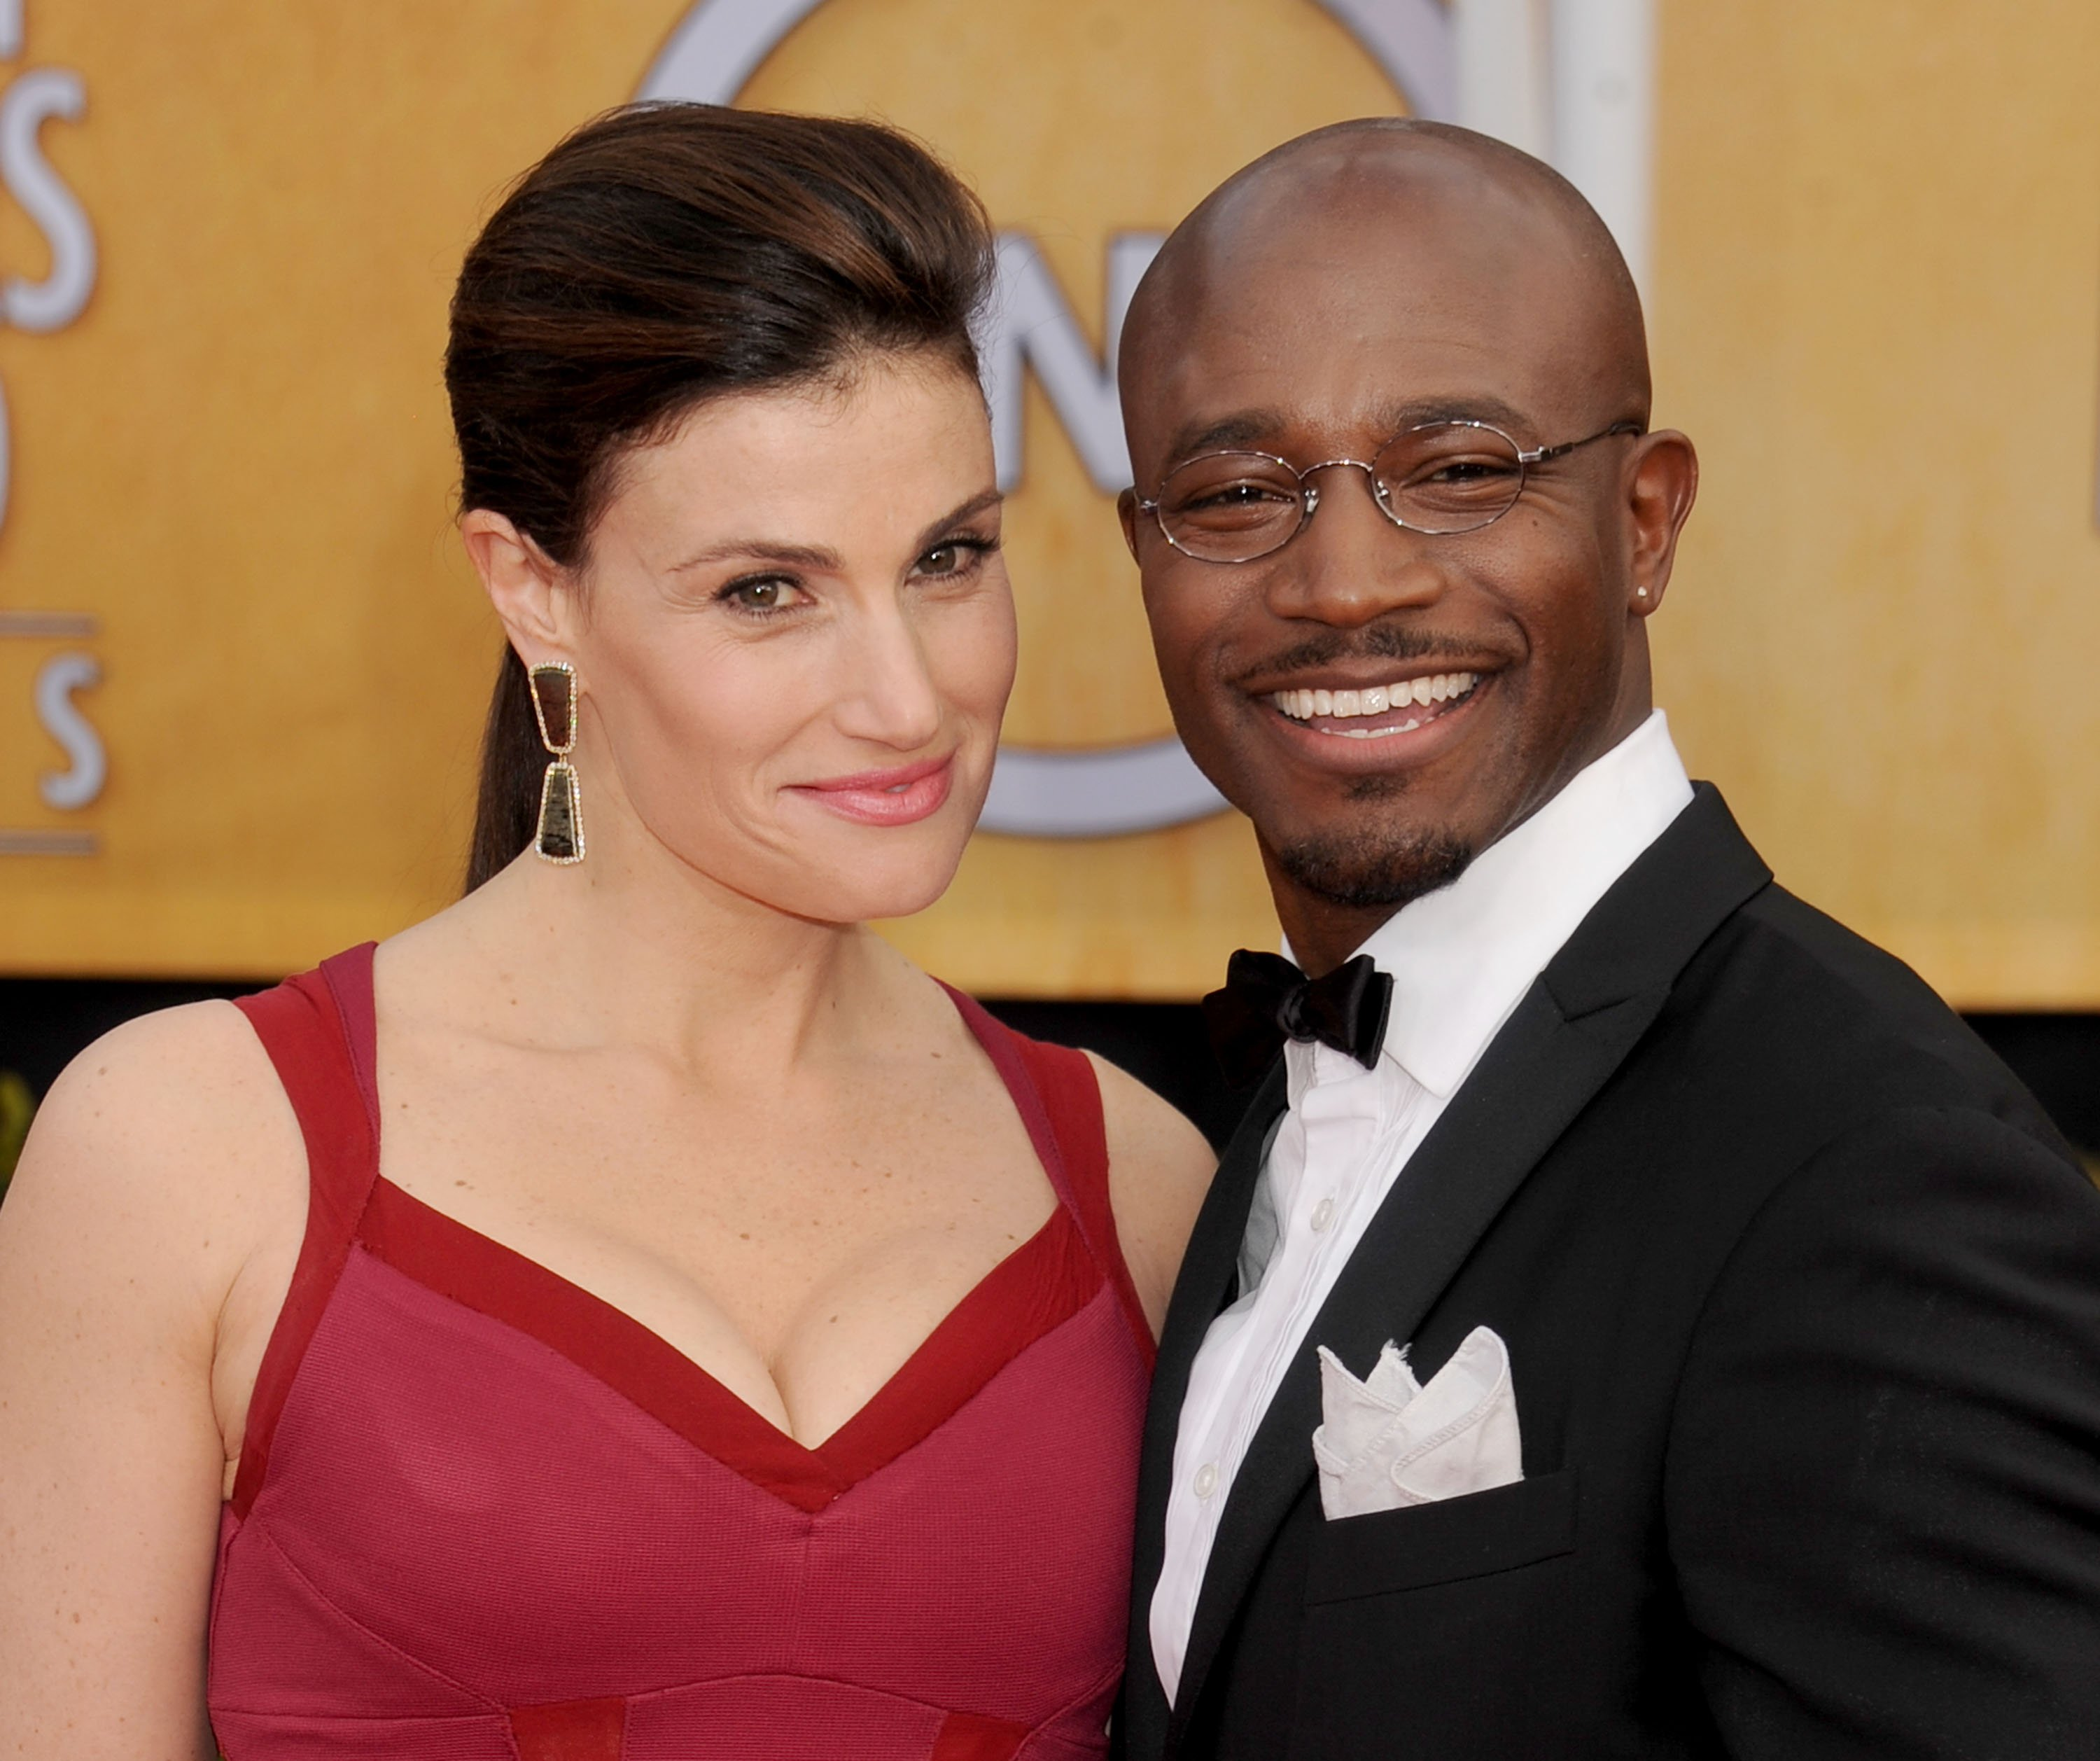 Idina Menzel and Taye Diggs arrive at the 19th Annual Screen Actors Guild Awards at The Shrine Auditorium on January 27, 2013 in Los Angeles, California   Photo: Getty Images